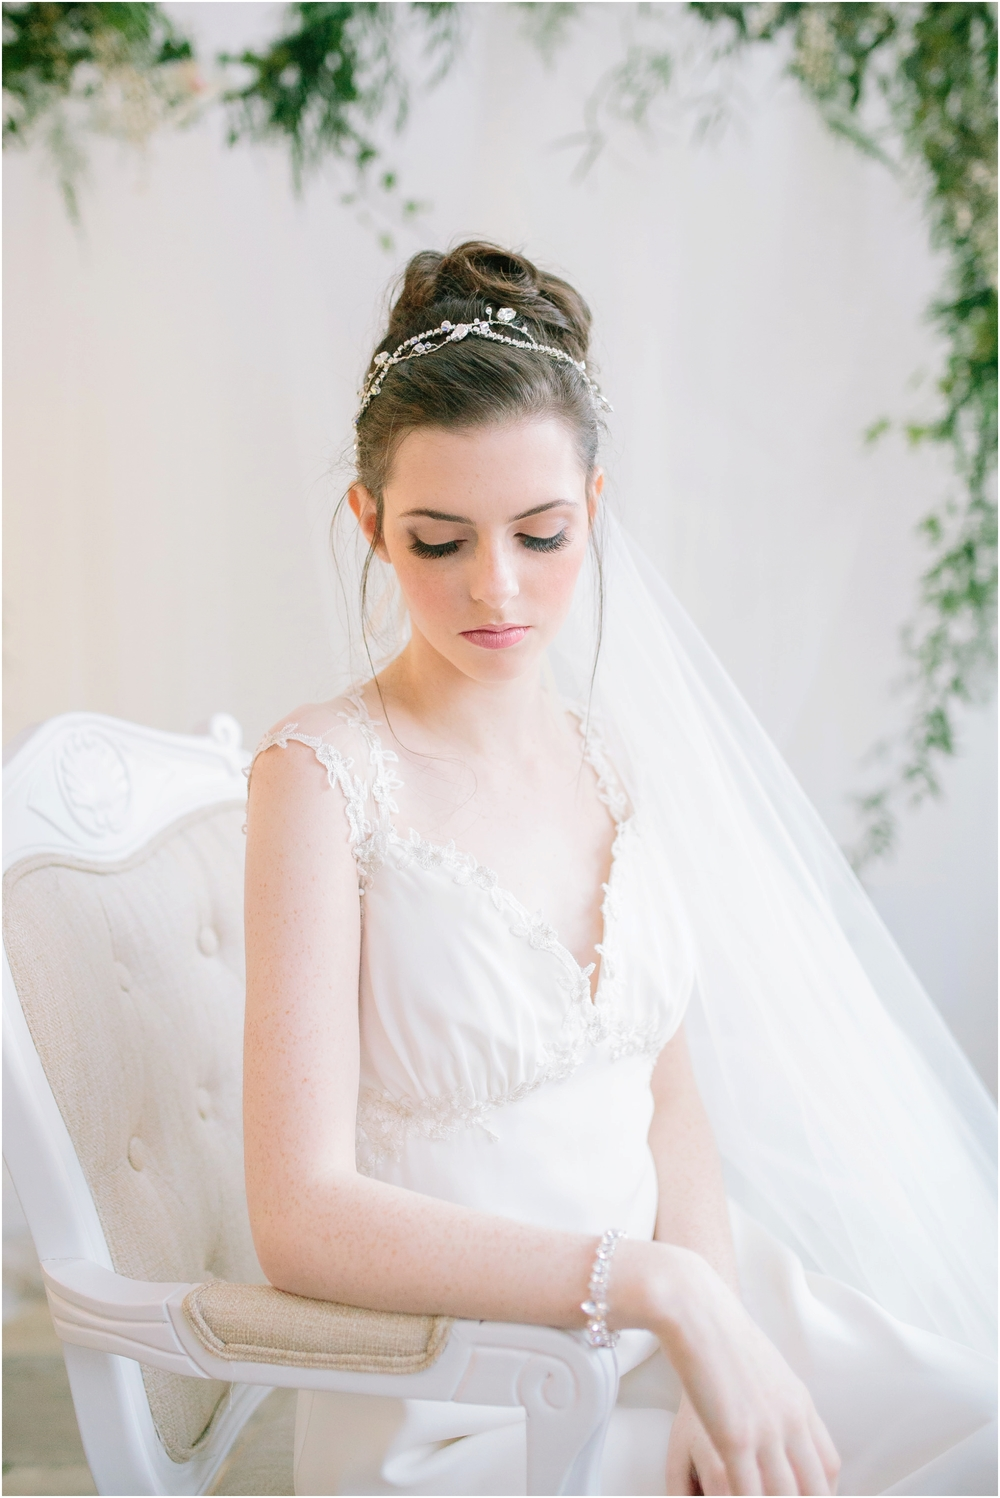 suzanne_li_photography_bridal_accessories_susan_dick_0016.jpg